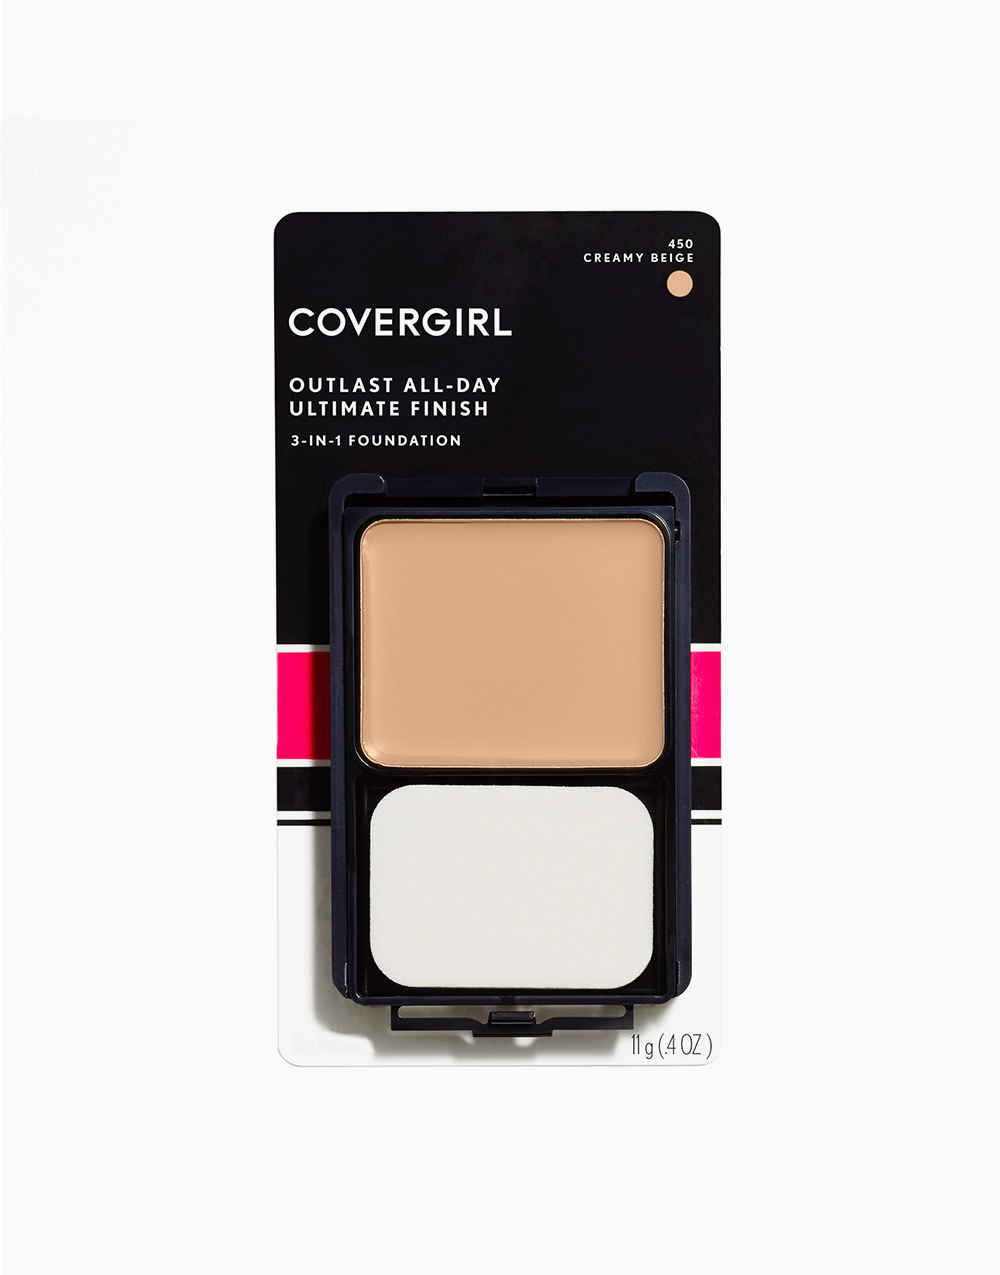 Outlast All-Day Ultimate Finish 3-in-1 Foundation Makeup by CoverGirl | Creamy Beige